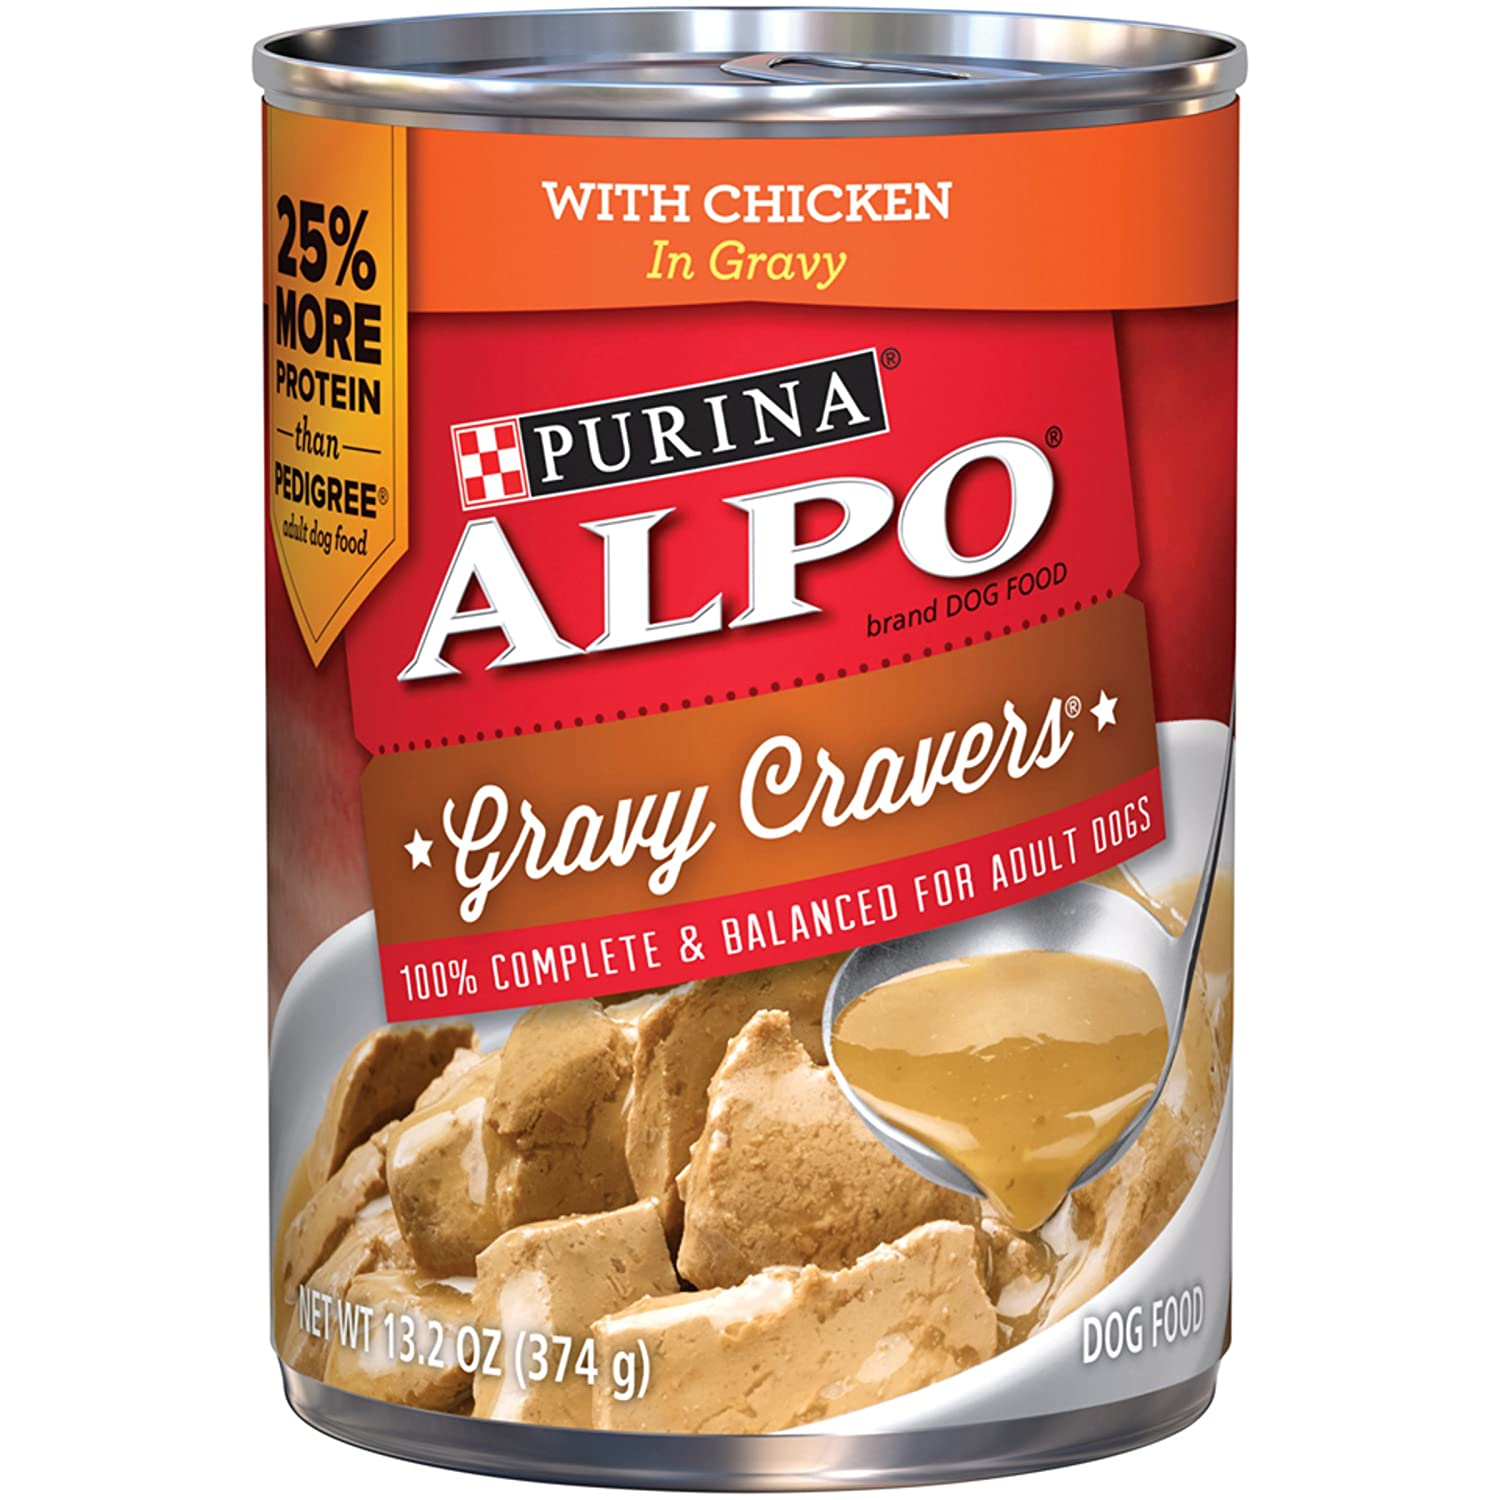 Purina ALPO Gravy Cravers Wet Dog Food - 12-13.2 oz. Cans